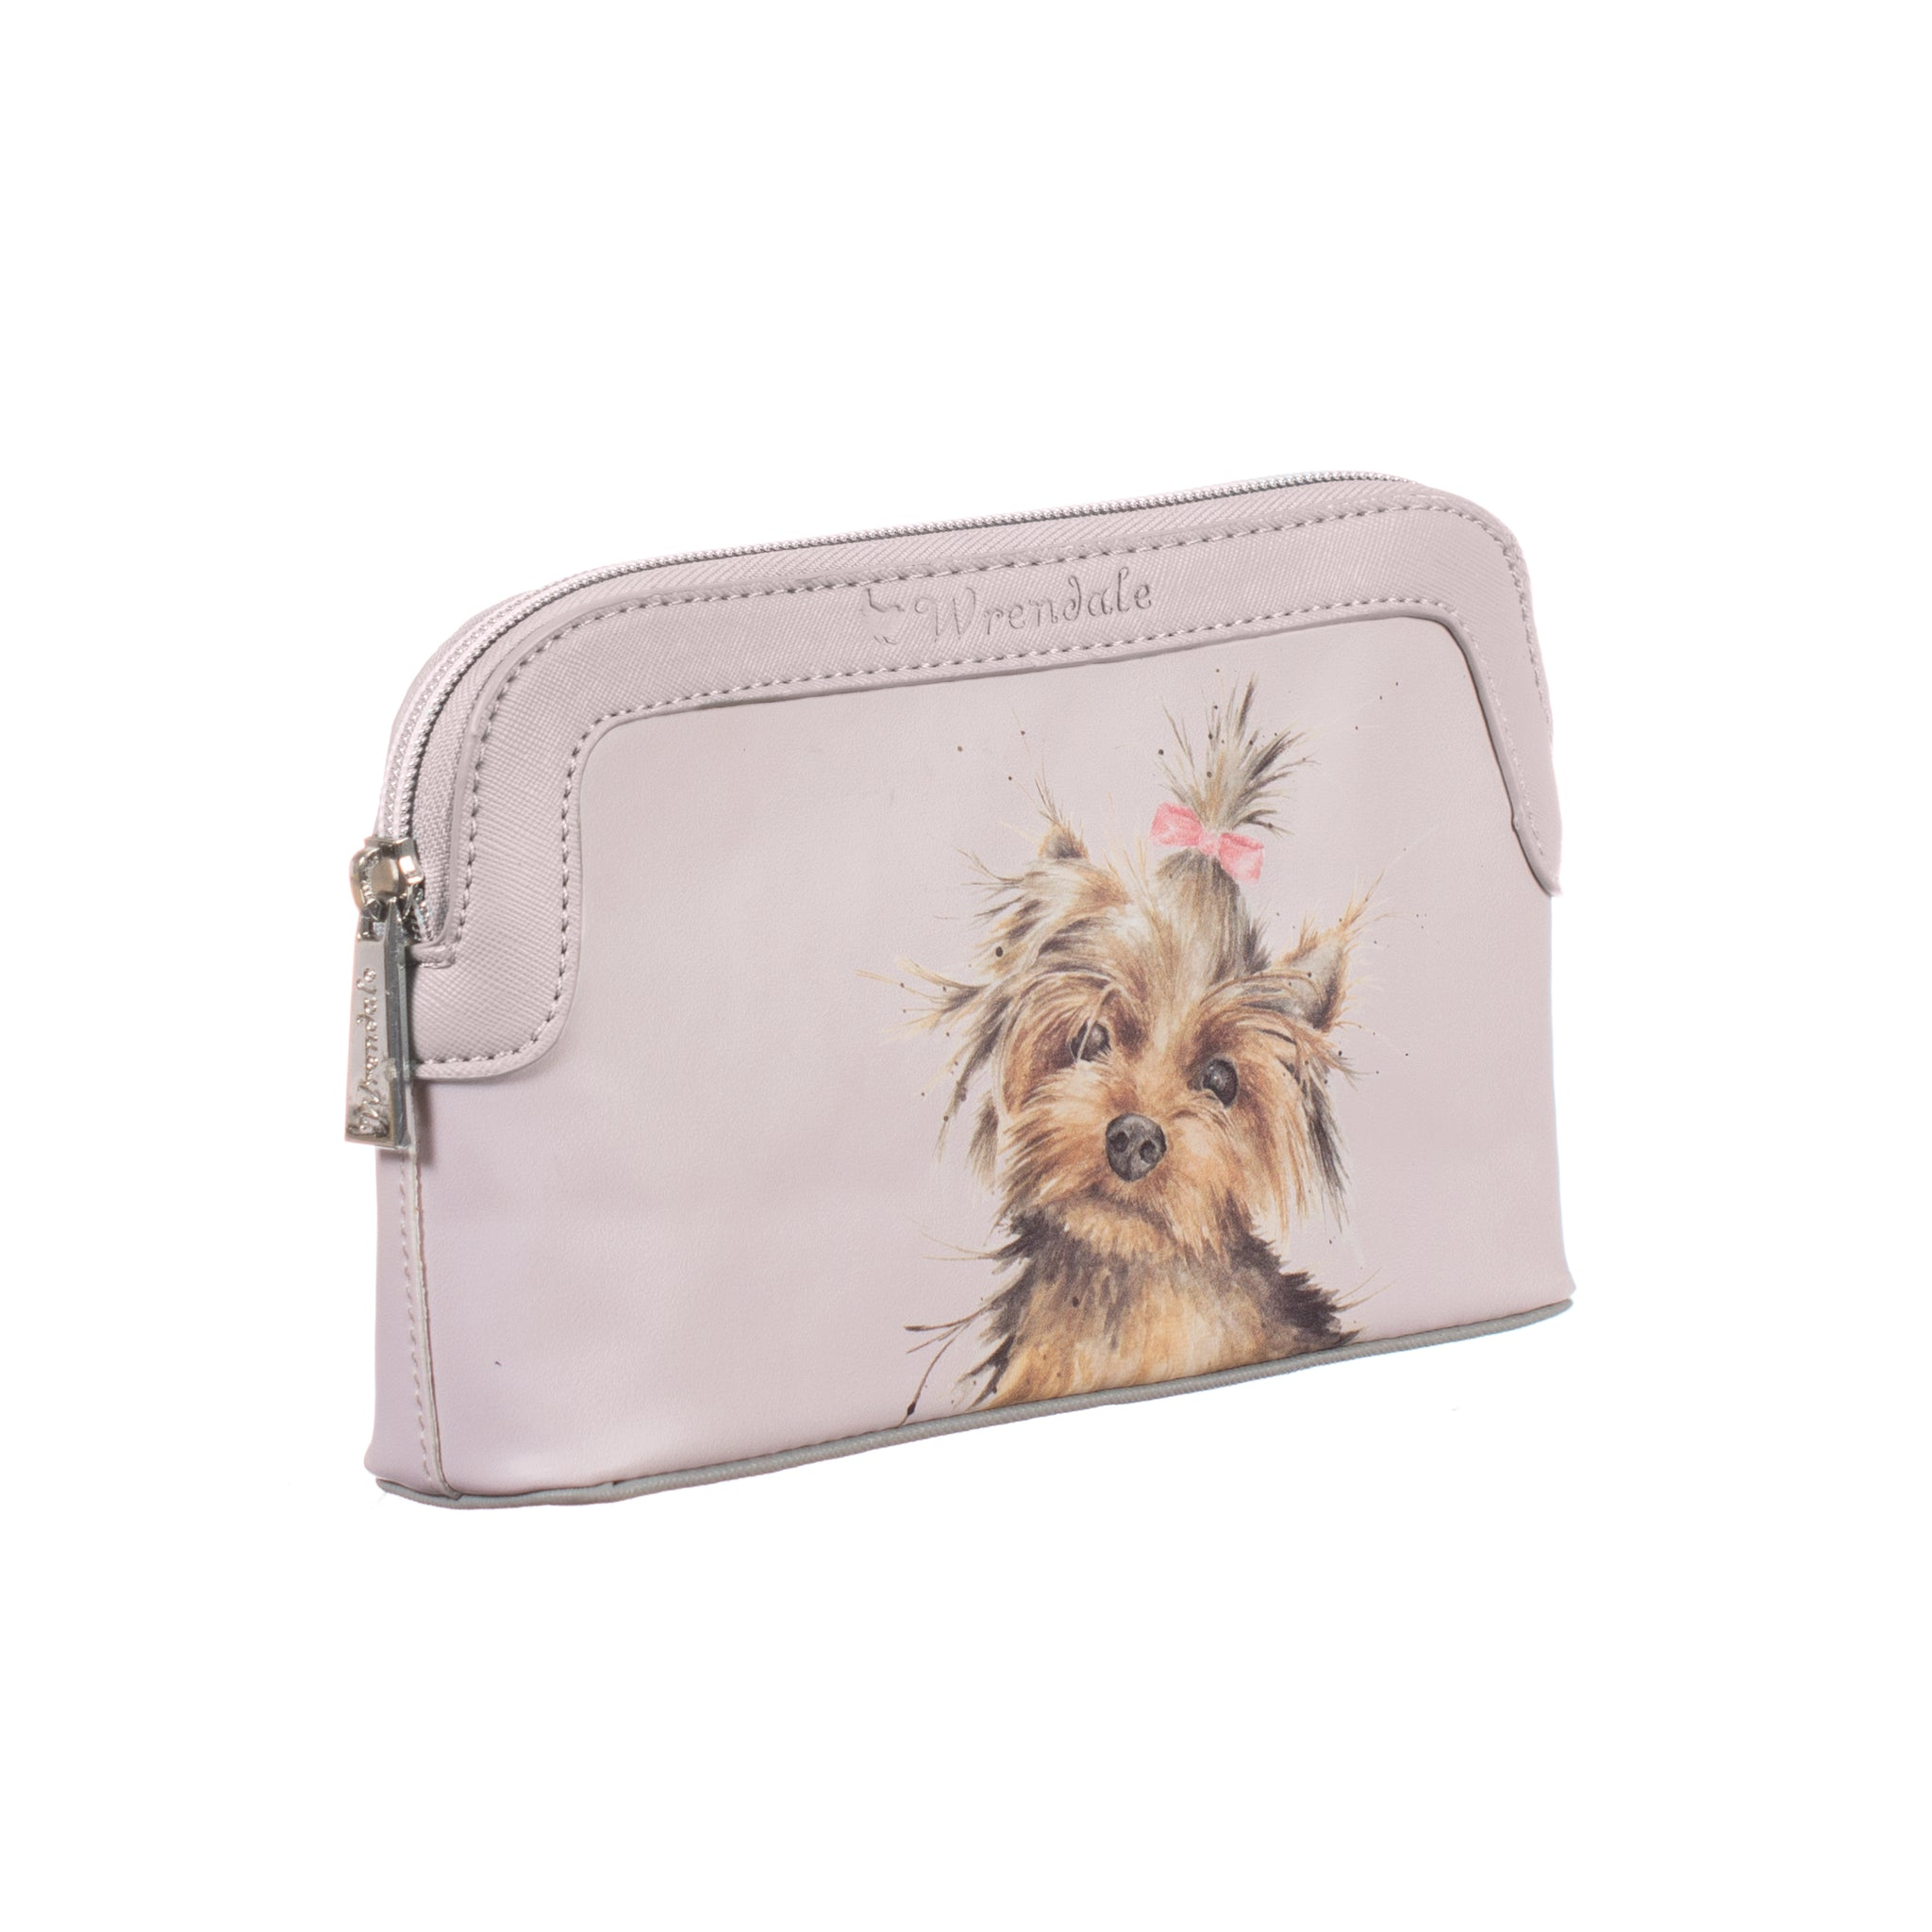 *NEW* from Wrendale Designs - Small Cosmetics Bag - A Dog's Life